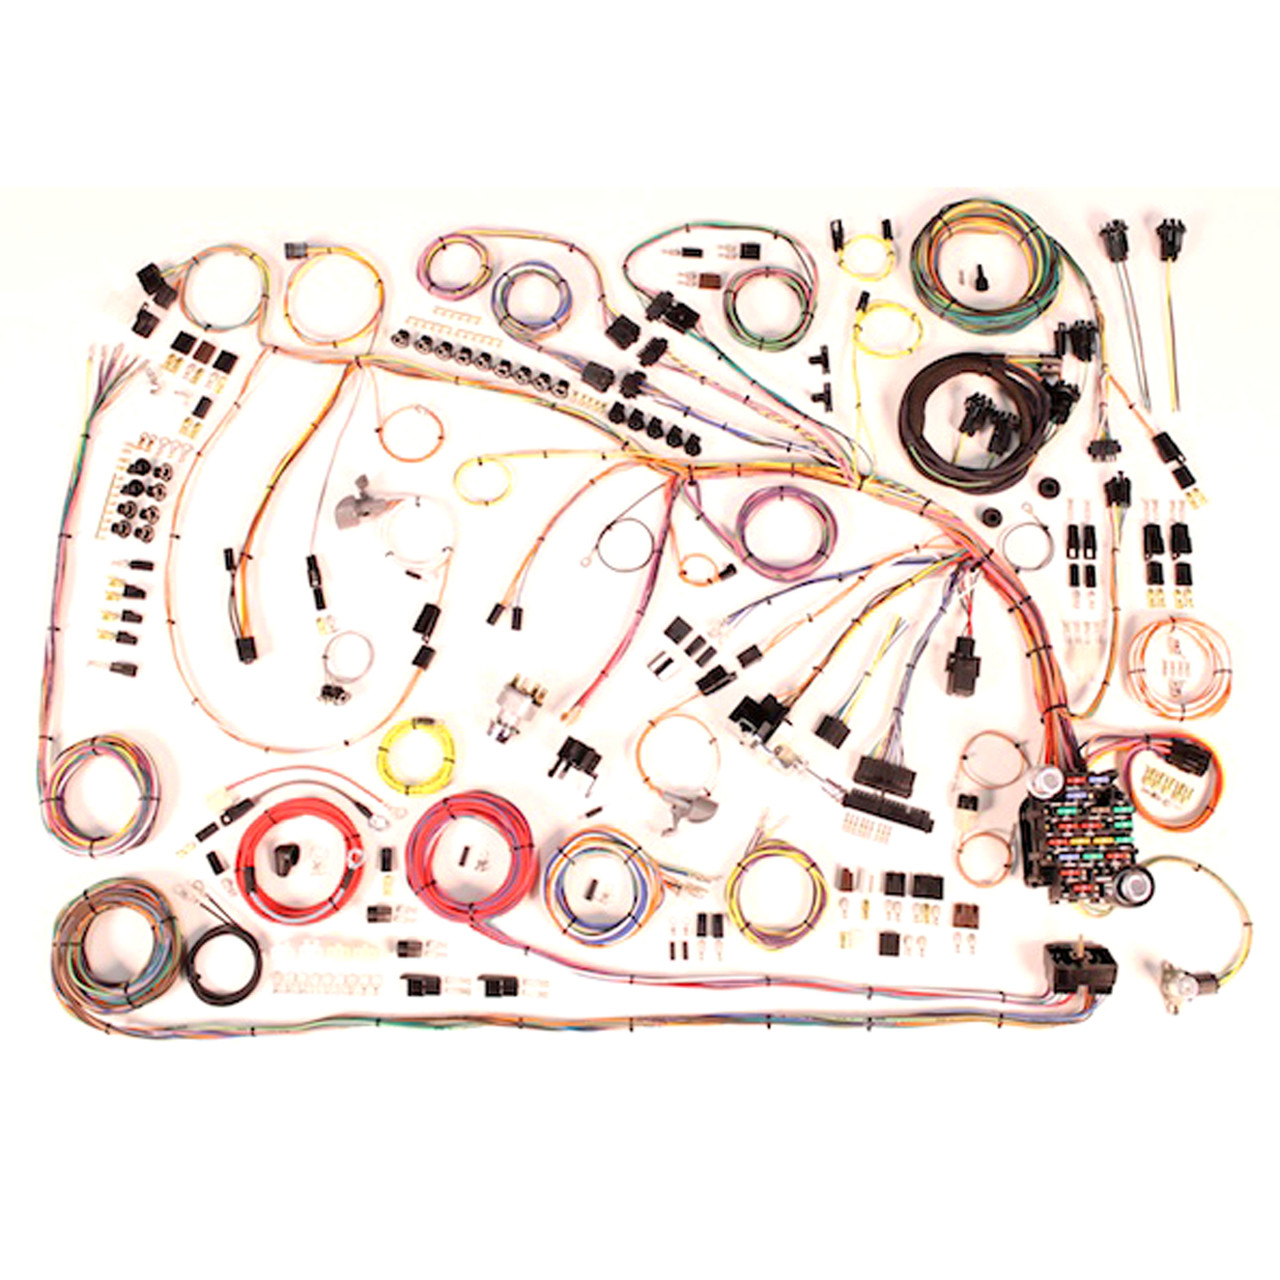 american autowire 1965 chevrolet impala classic update complete wiring harness for 1965 chevy impala [ 1280 x 1280 Pixel ]